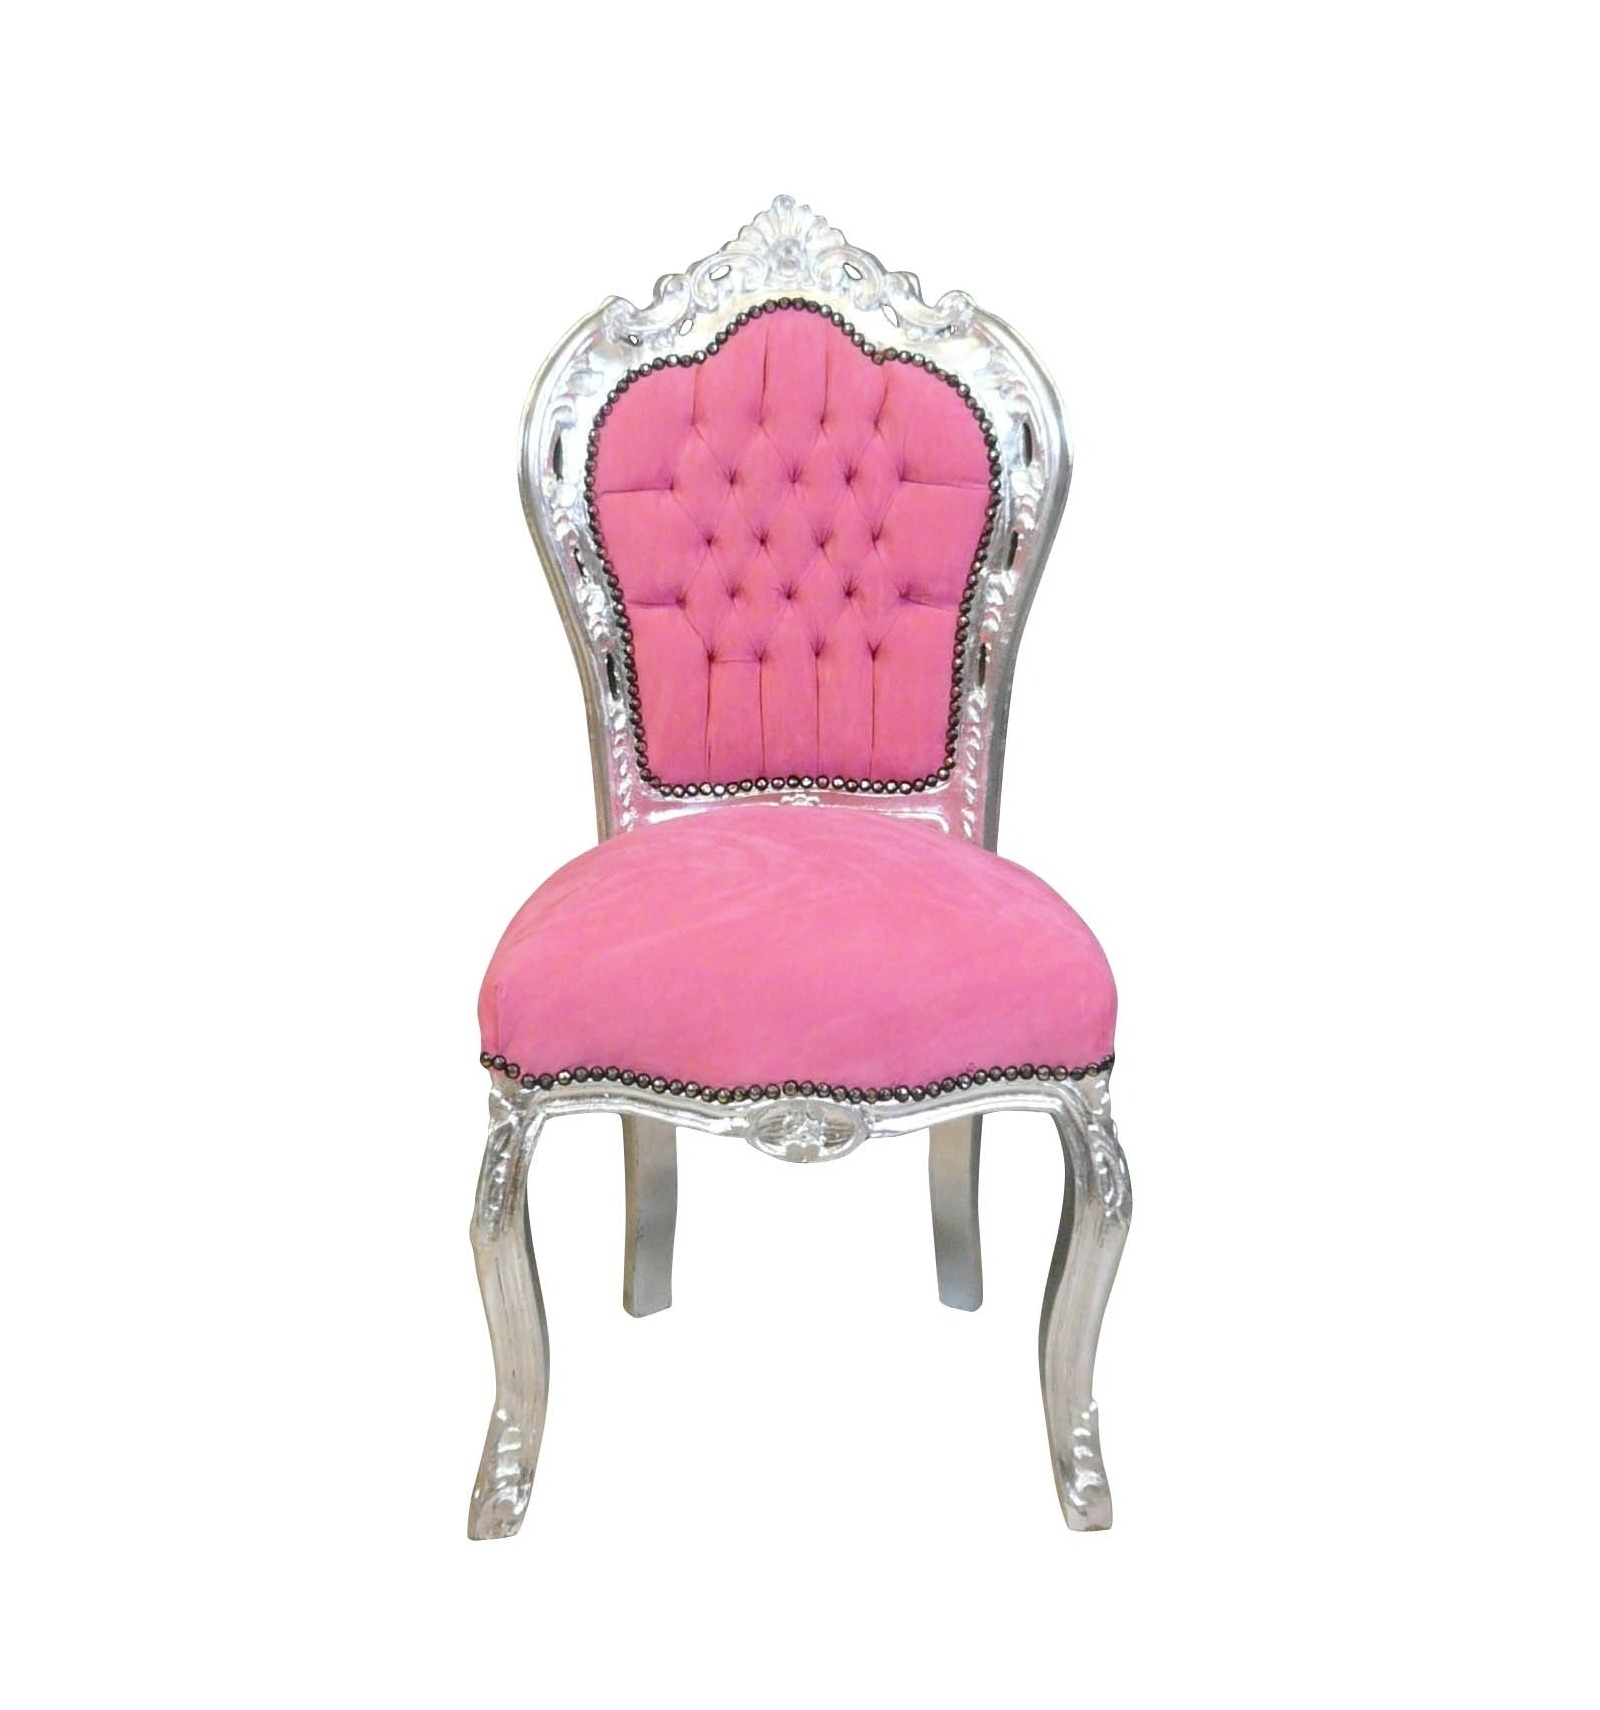 chaise baroque rose et argent fauteuil et meubles de style. Black Bedroom Furniture Sets. Home Design Ideas